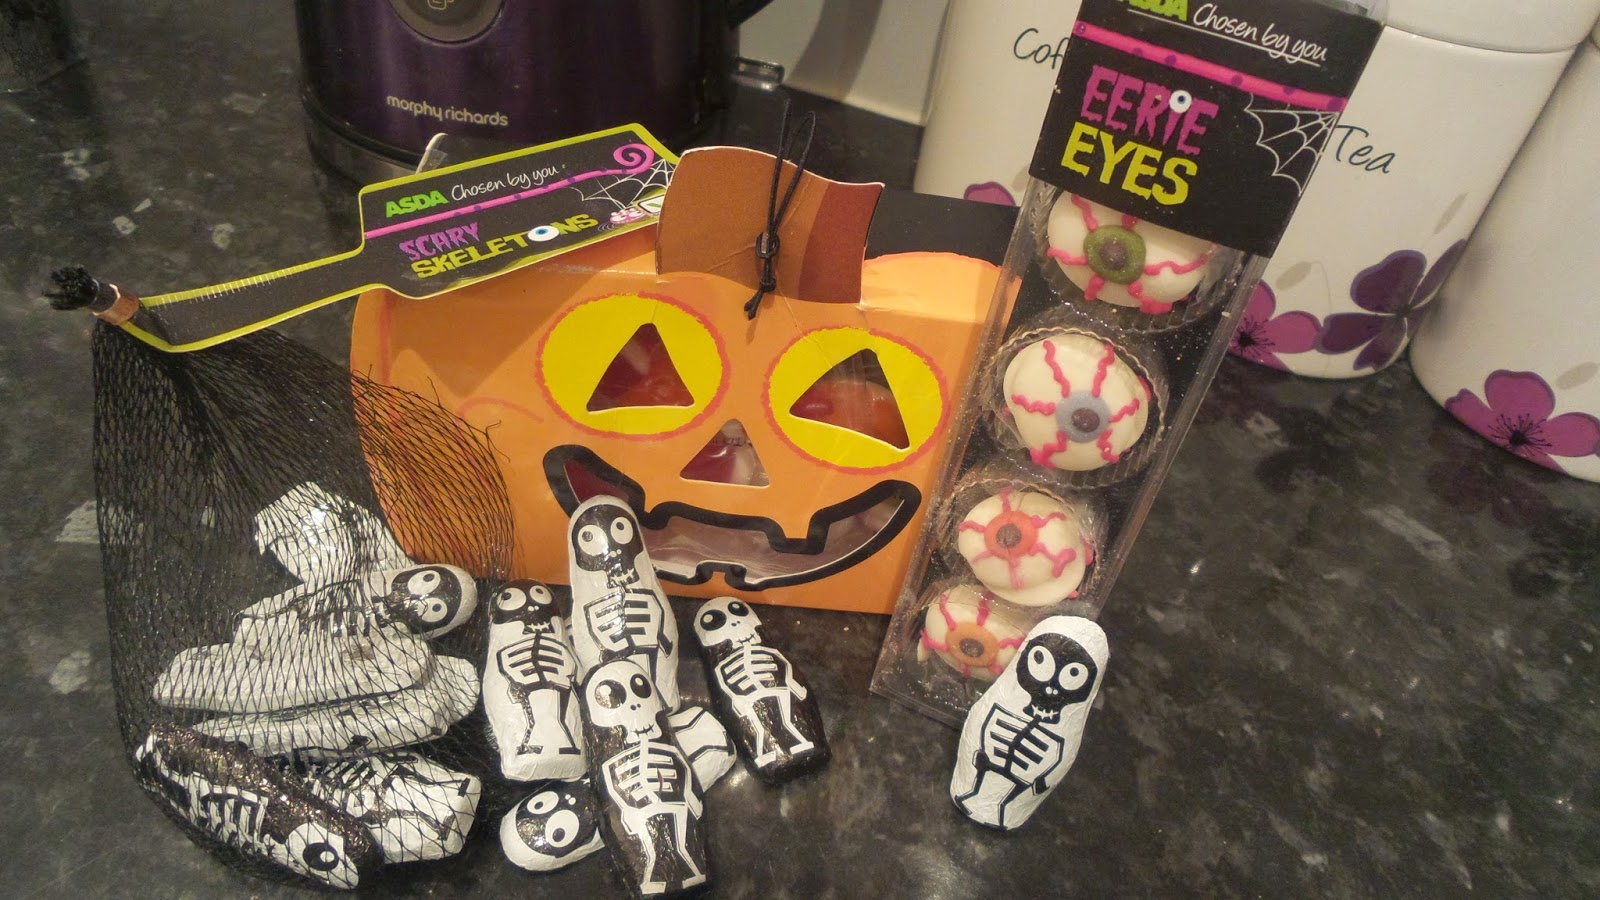 Asda Photo Cake Decorations : Sorted for Halloween Yet? ASDA s got it all. Coming from ...